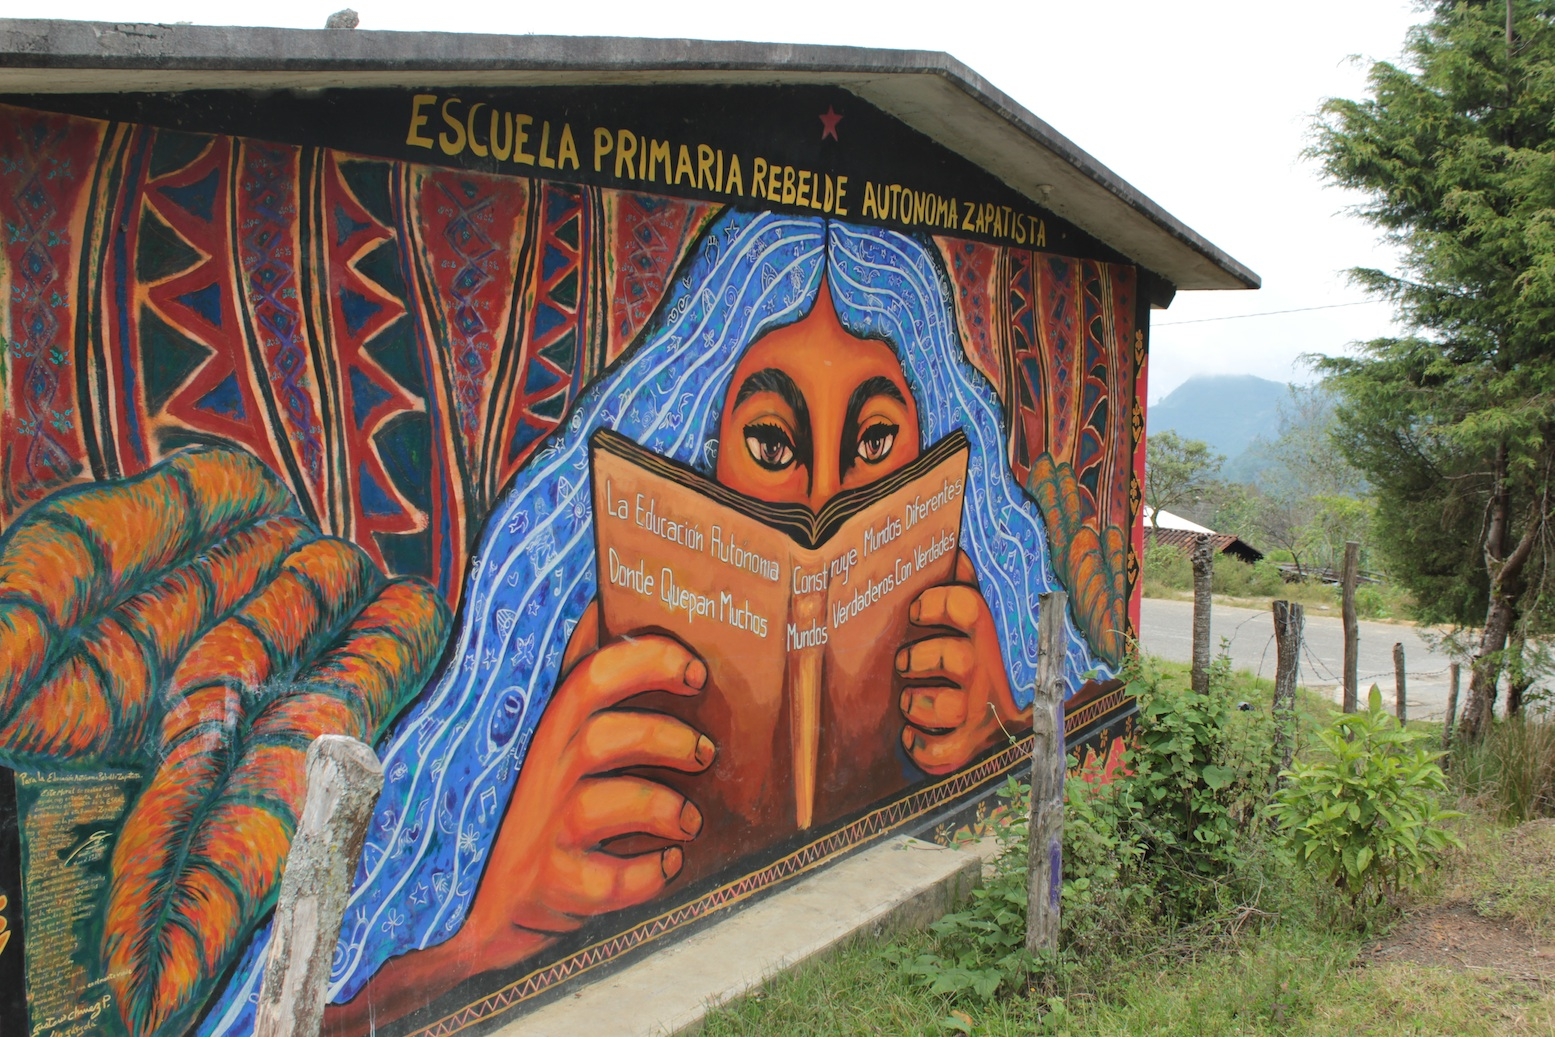 Graffiti enlivened learning for Mural zapatista